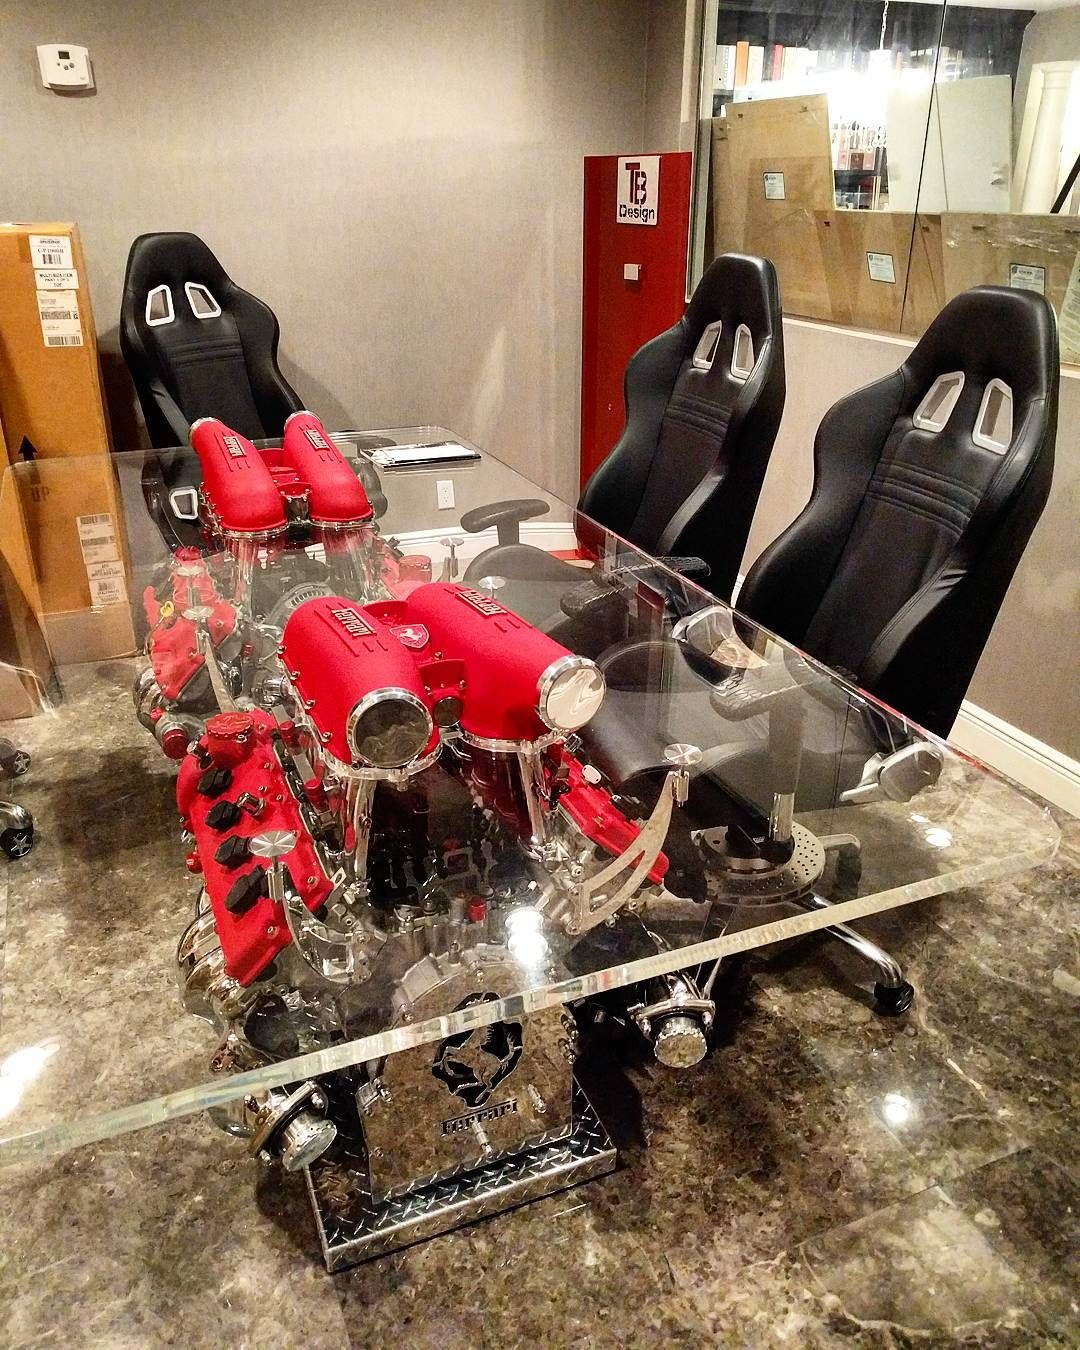 The Engine Room Design: Our Office Racing Chairs Look Great When You Tuck Them In